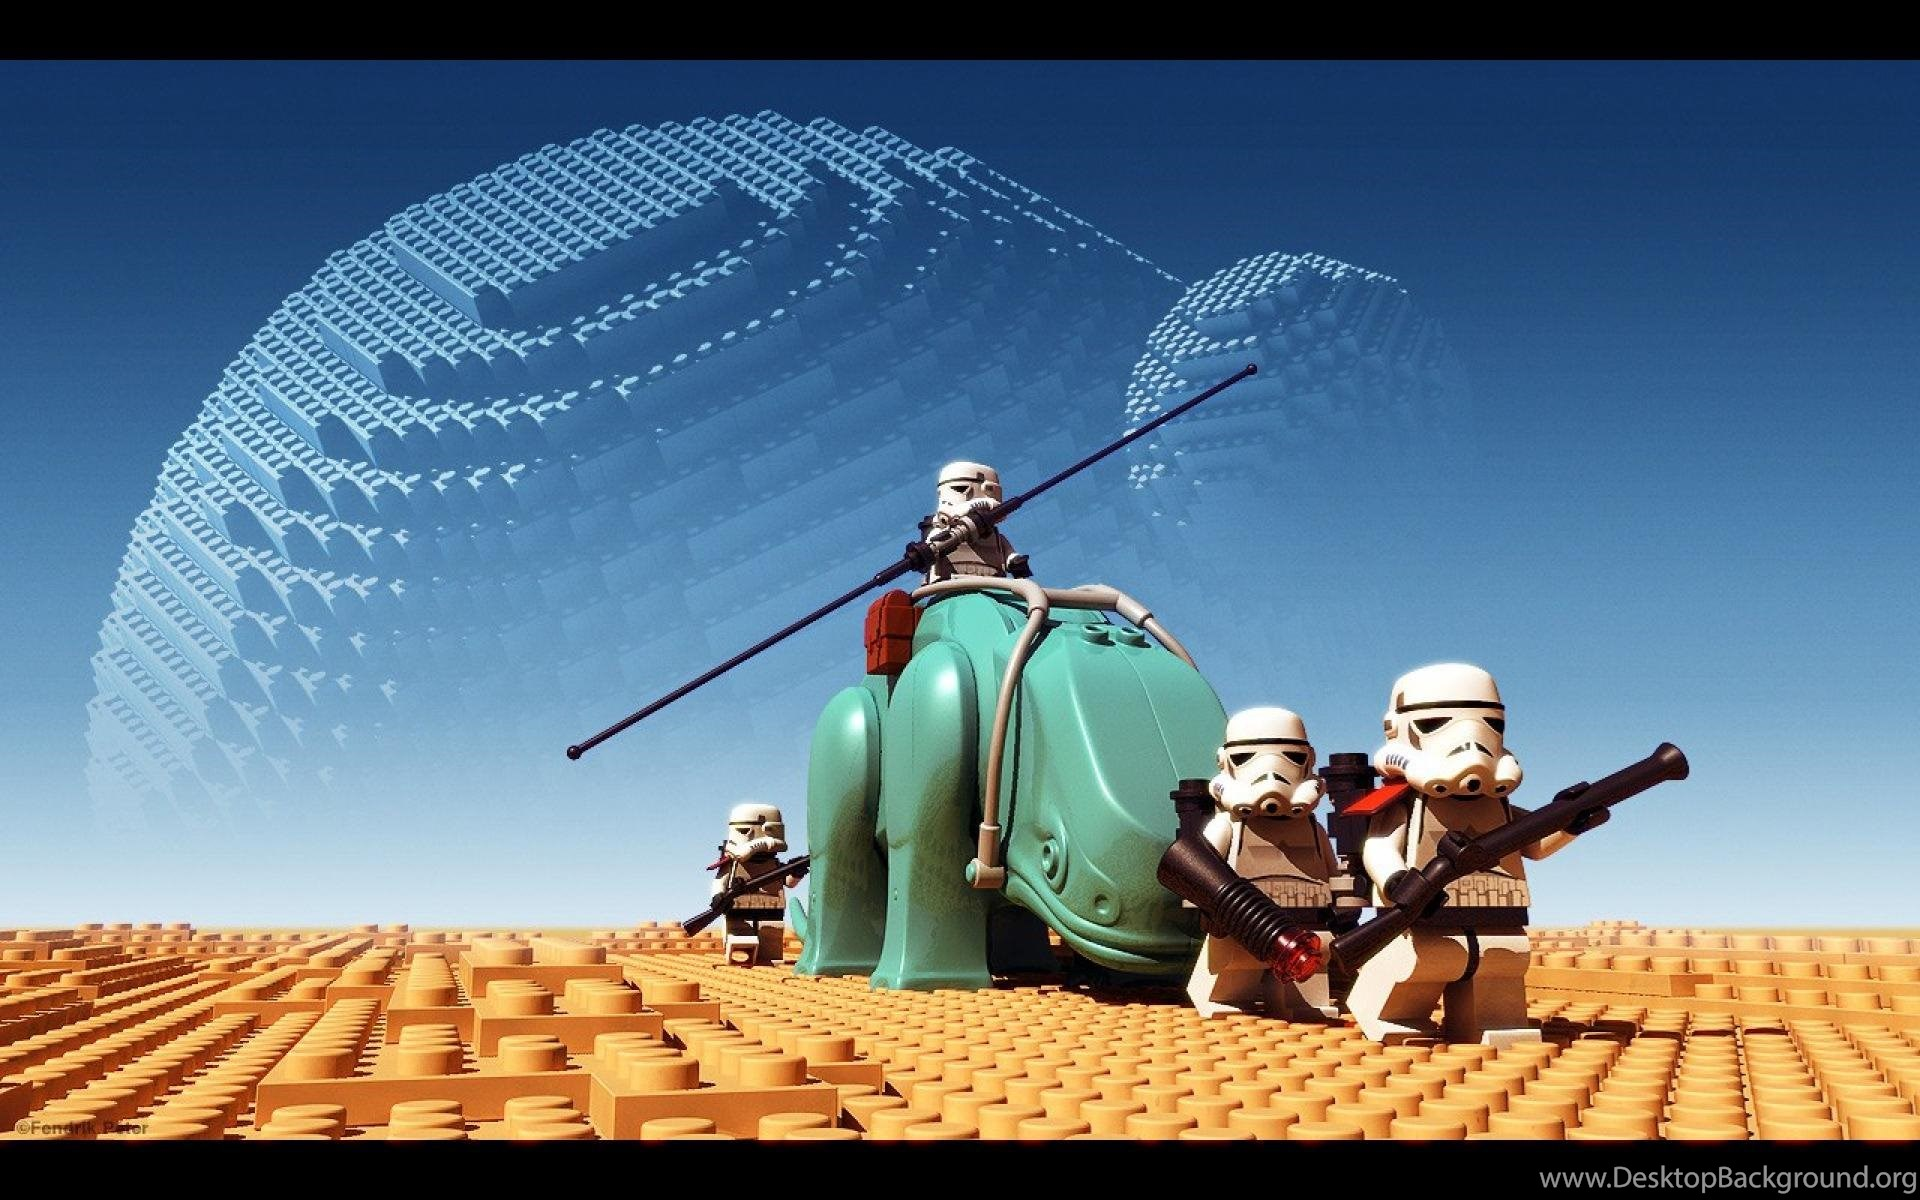 Lego Star Wars Awesome Hd Wallpapers Desktop Background